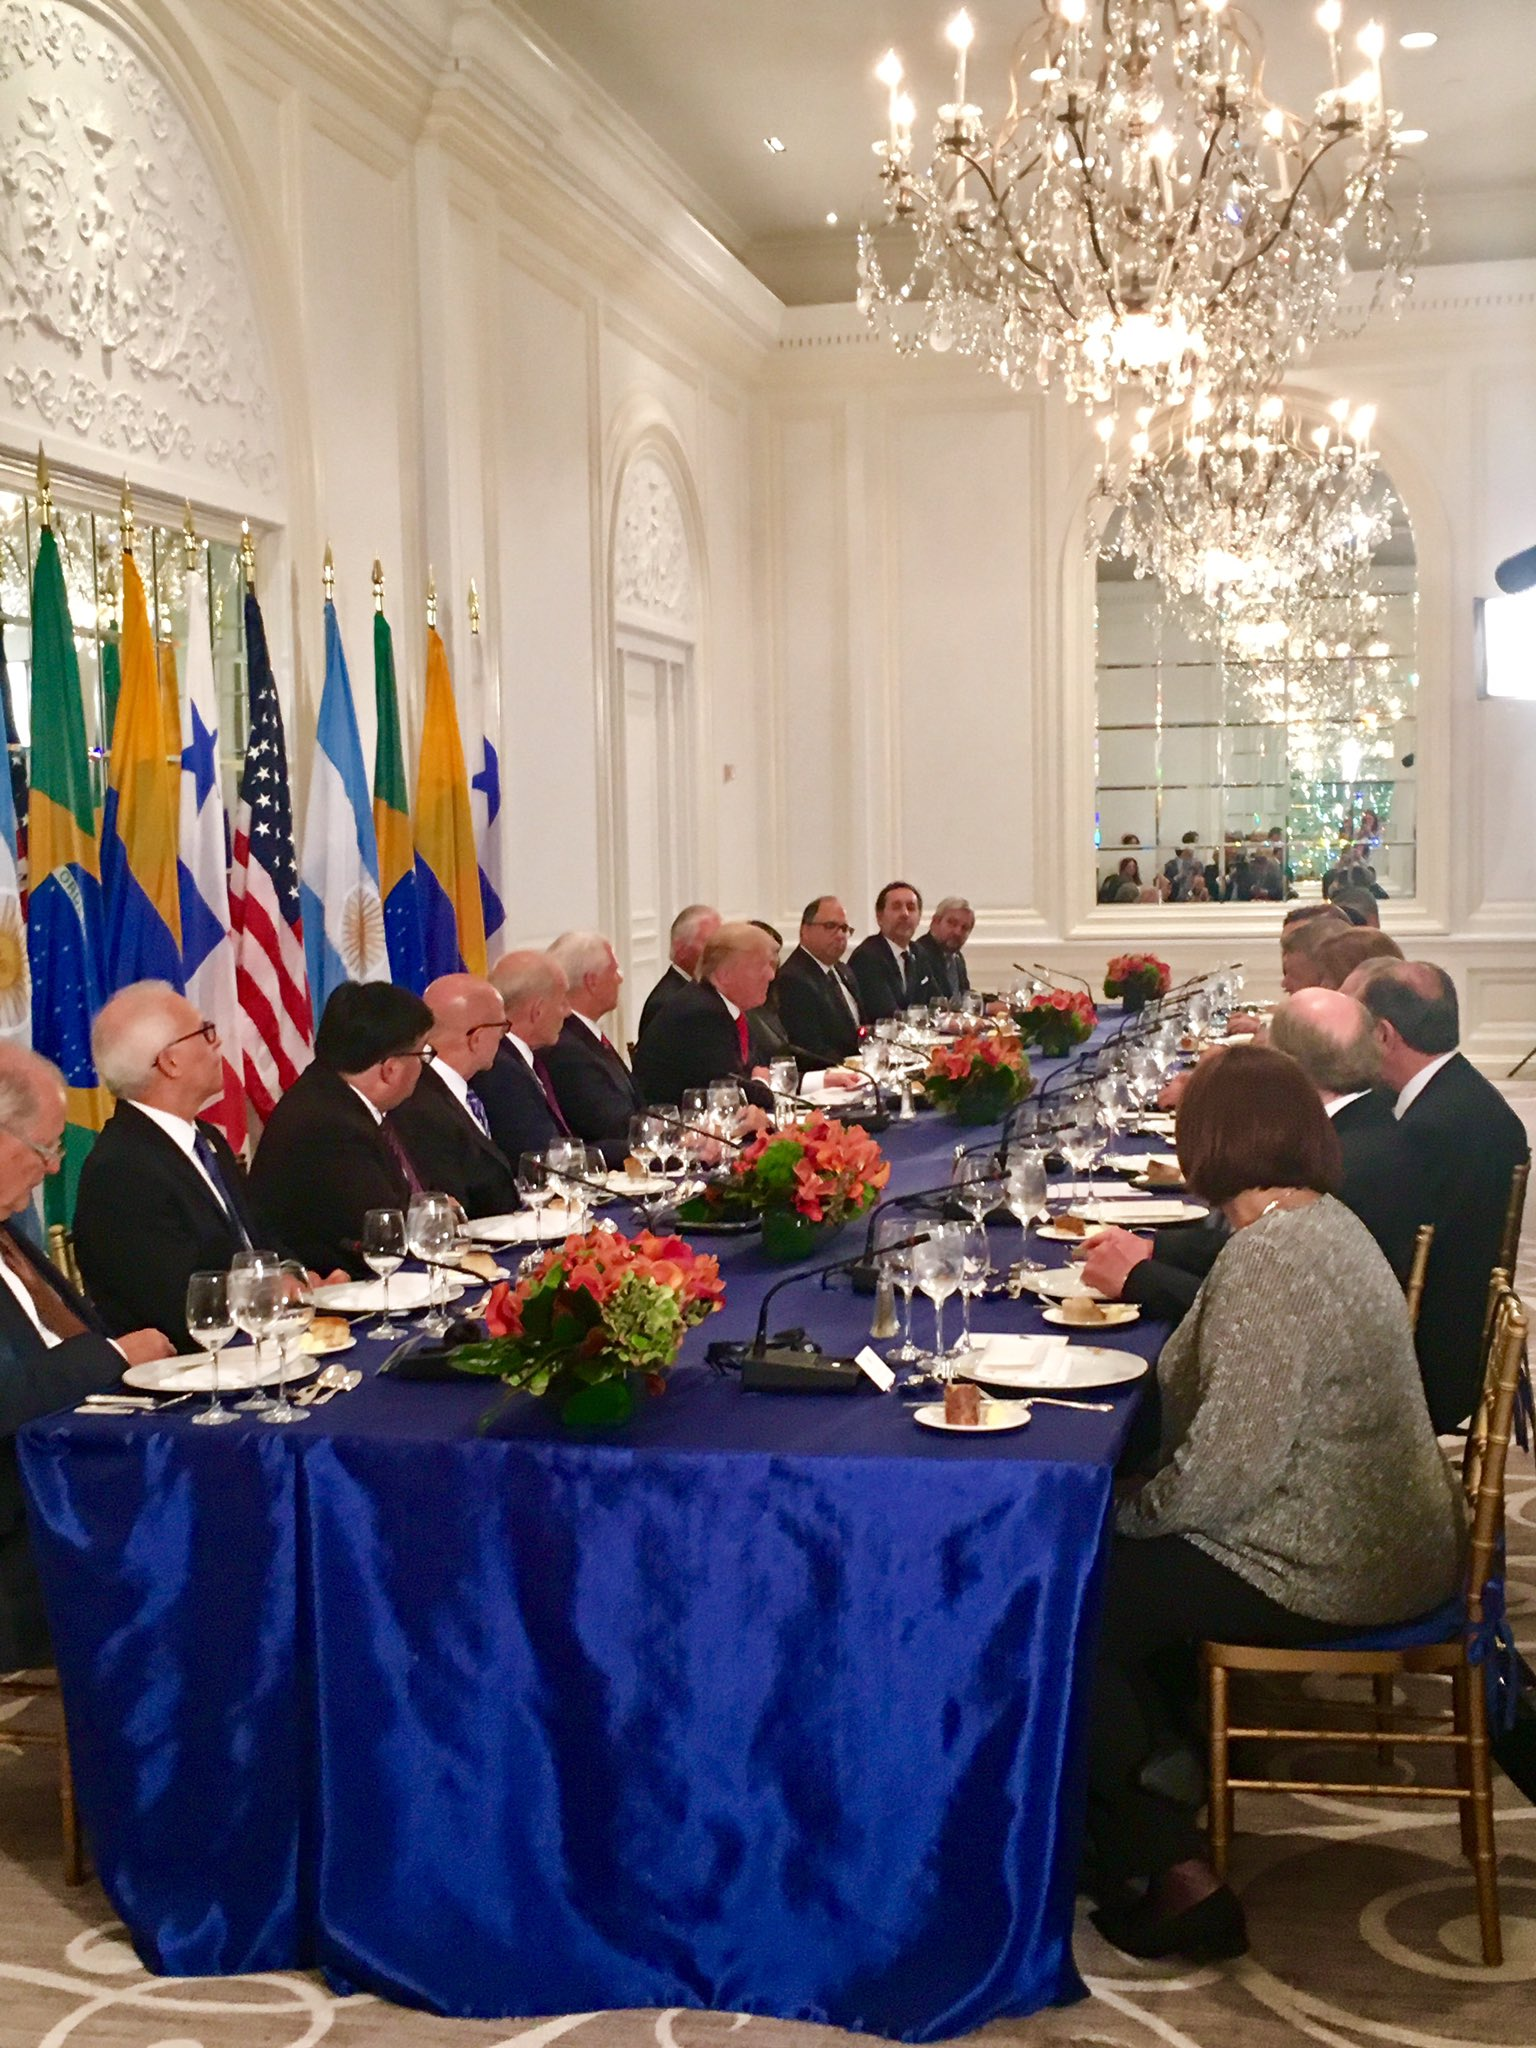 .@POTUS hosts Latin American leaders for working dinner tonight in NYC. #UNGA https://t.co/oC1J6JGwkg